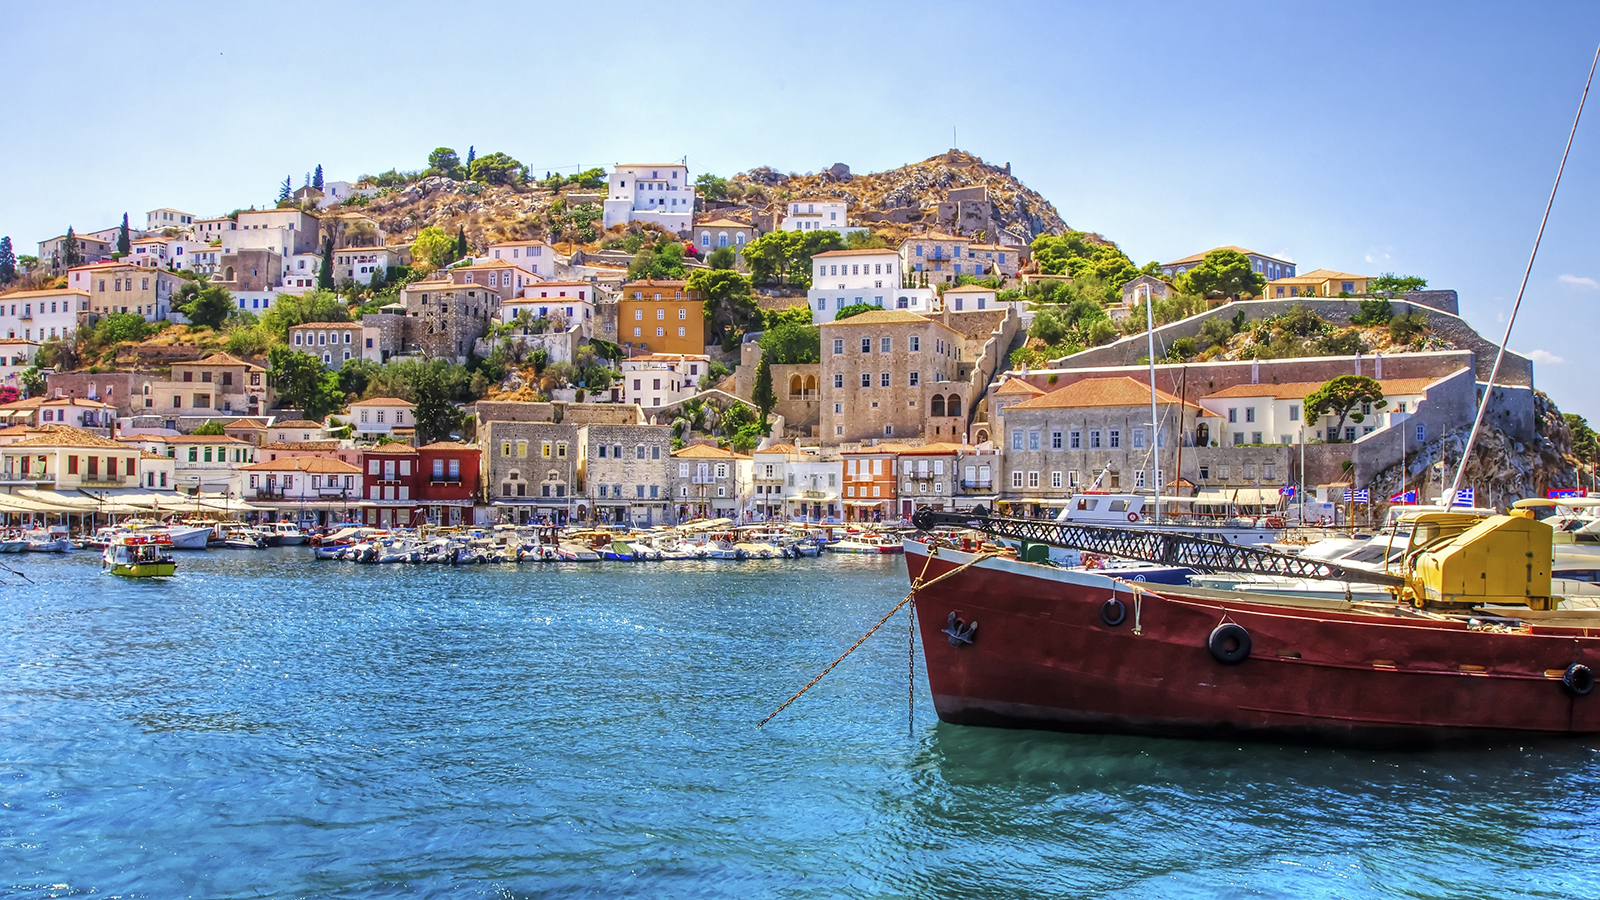 https://enjoytravel.md/sites/enjoytravel/files/Grecia.jpg